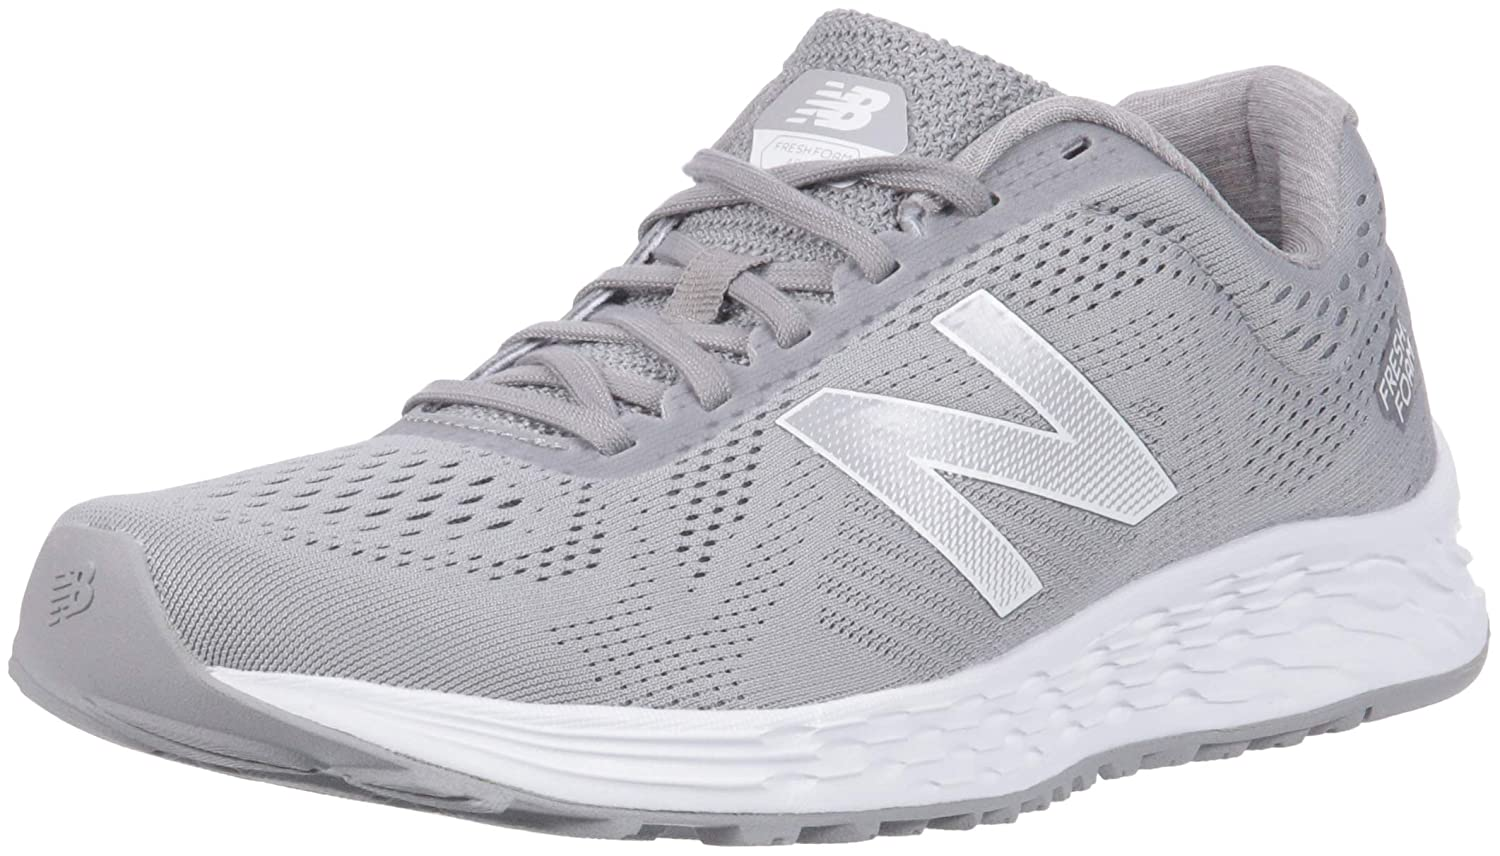 Team Away gris blanc New Balance Fresh Foam Arishi, Running Homme 46.5 EU